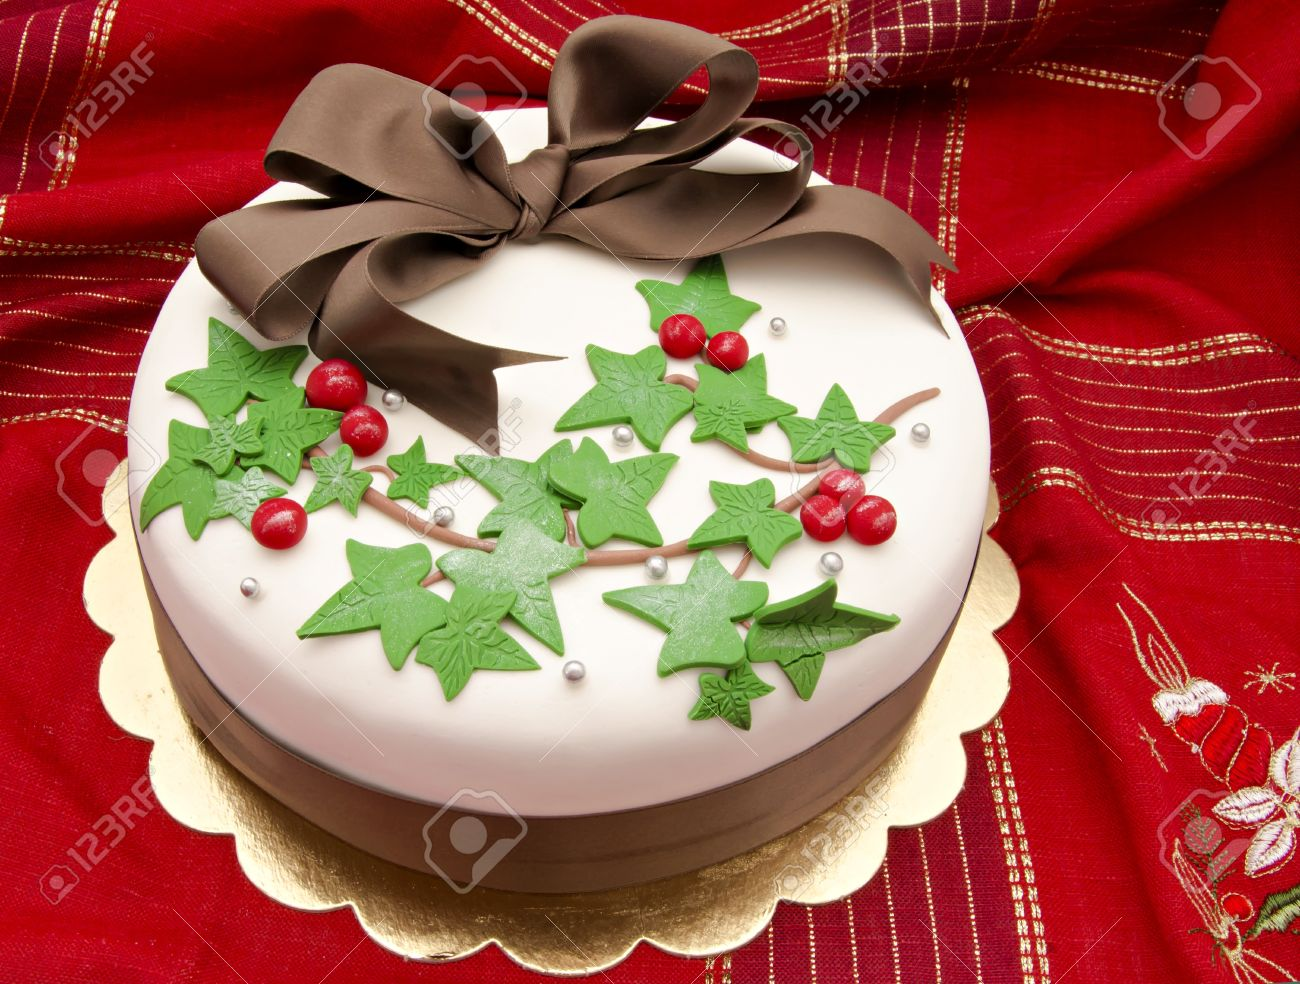 Christmas Cake Decorated With Fondant Holly Leaves Stock Photo